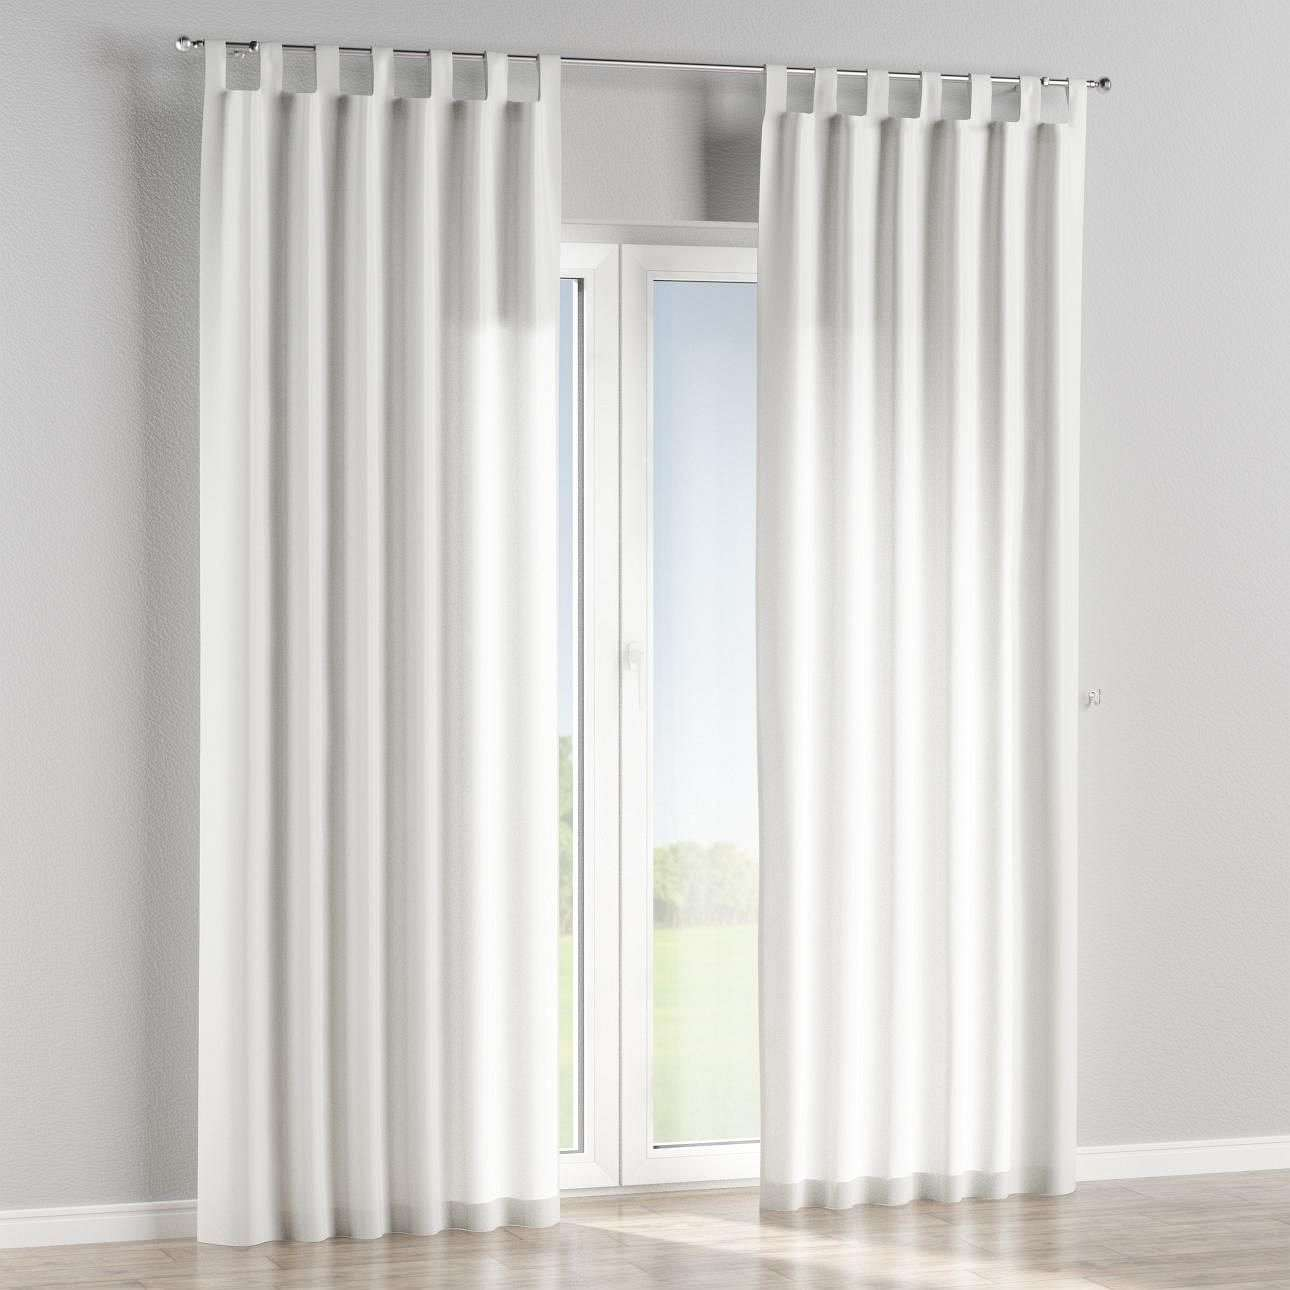 Tab top curtains in collection Linen , fabric: 392-09